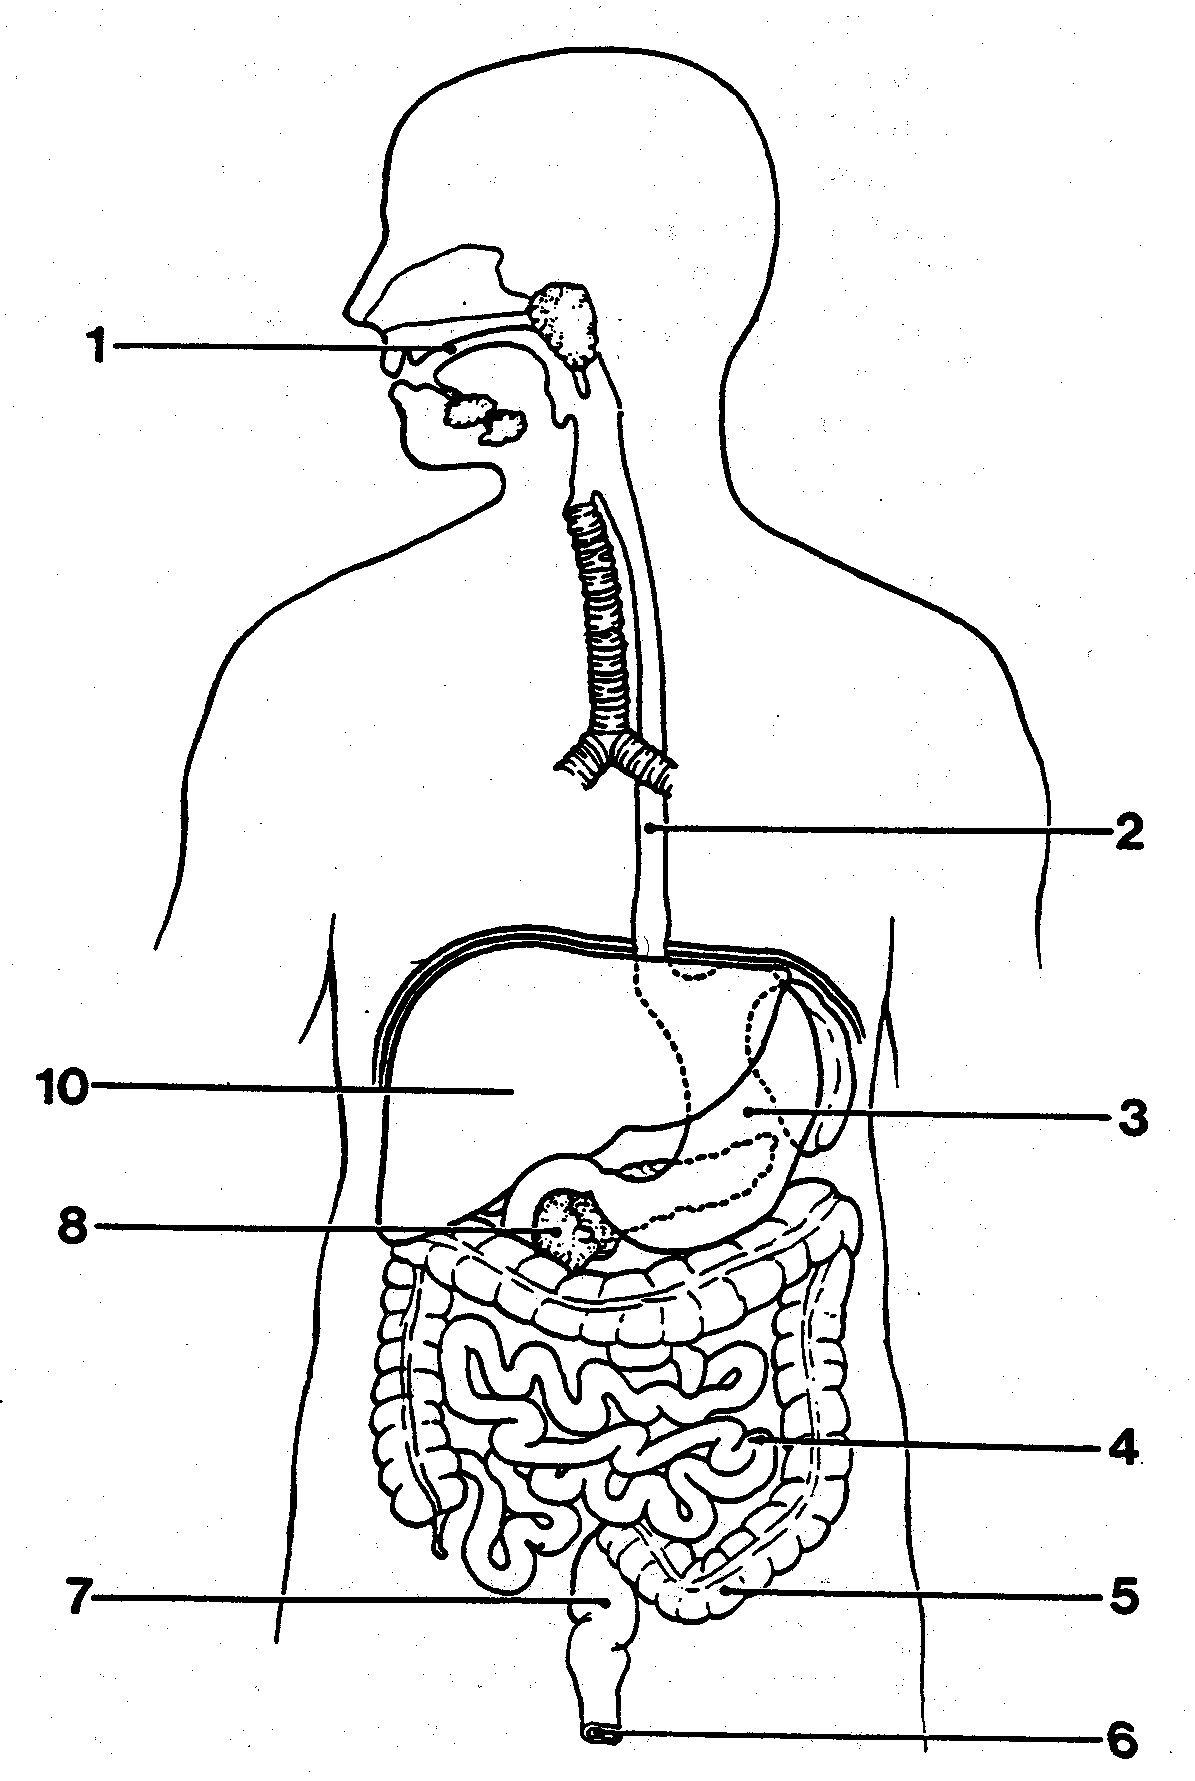 Animal Digestive System Worksheets   Printable Worksheets and Activities  for Teachers [ 1781 x 1195 Pixel ]